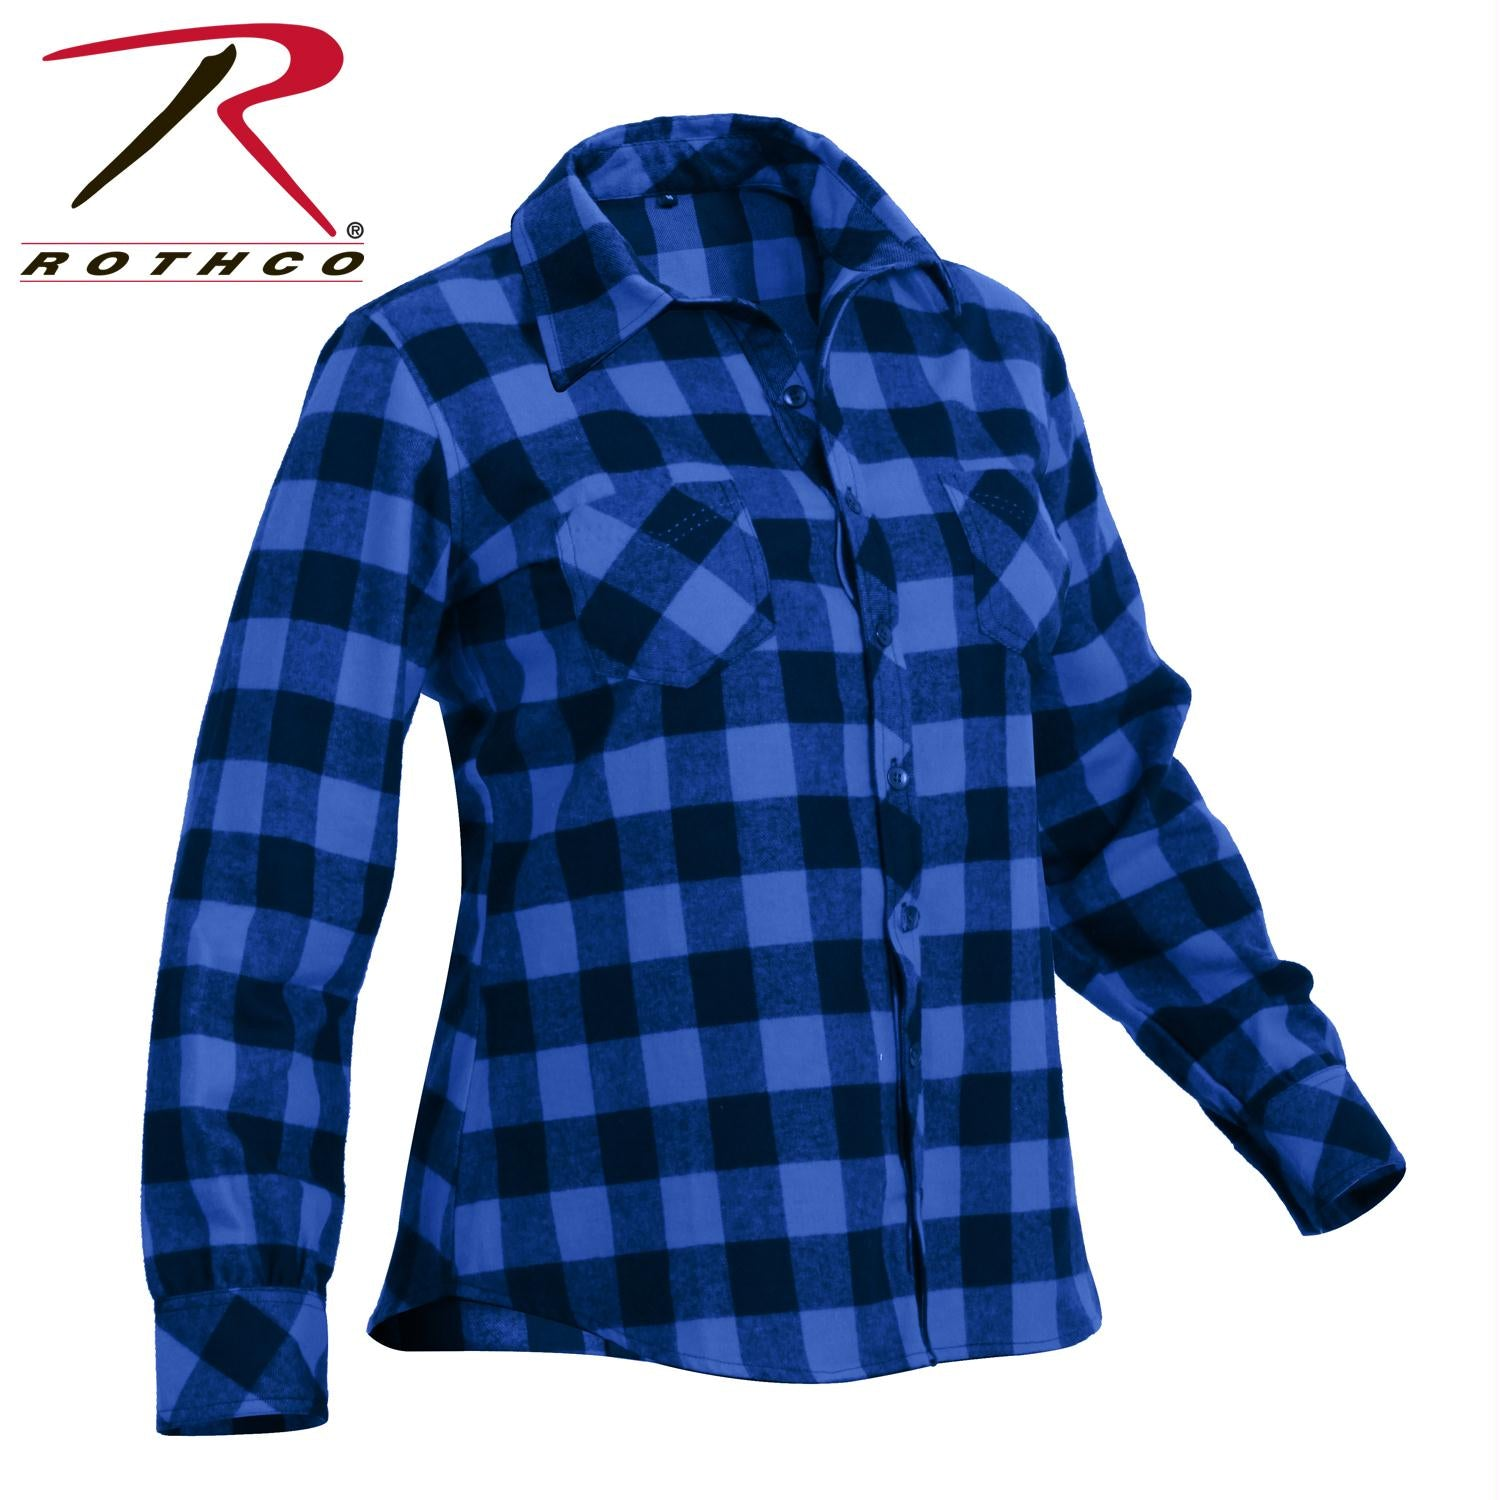 Rothco Womens Plaid Flannel Shirt - Blue / Black / XL